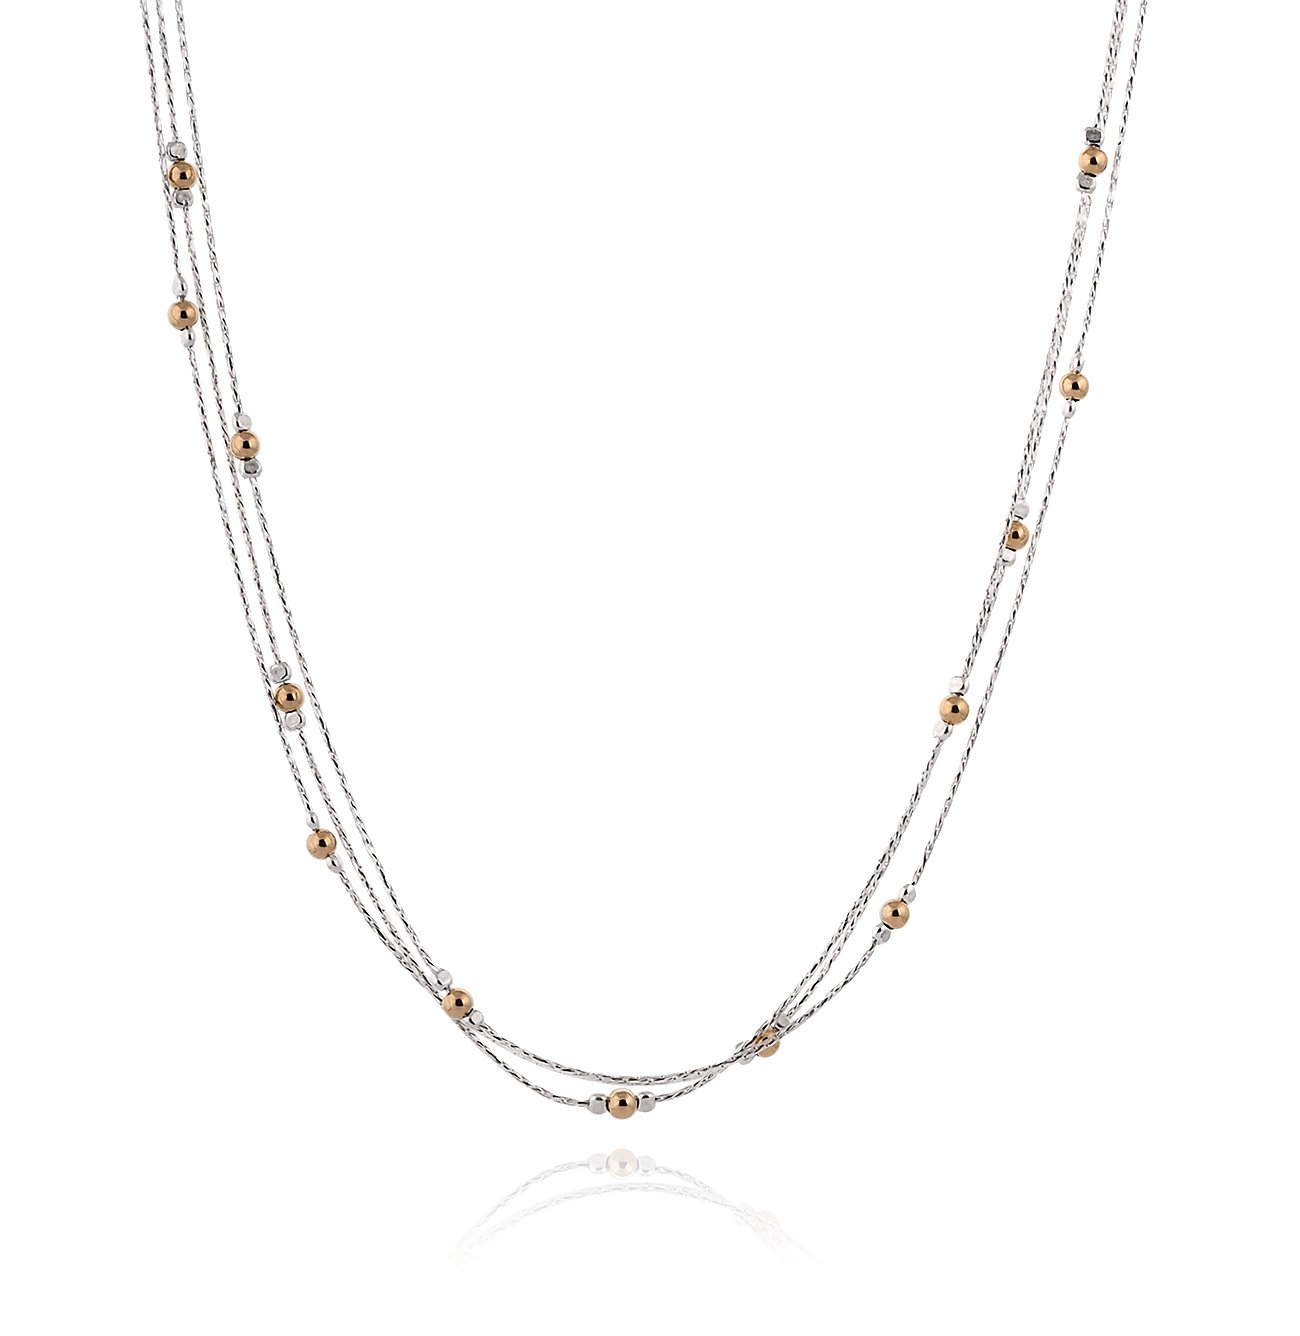 Triple Strand Two Tone Necklace 925 Sterling Silver & 14k Gold Filled Polished Beads, 18'' + 4'' Extender